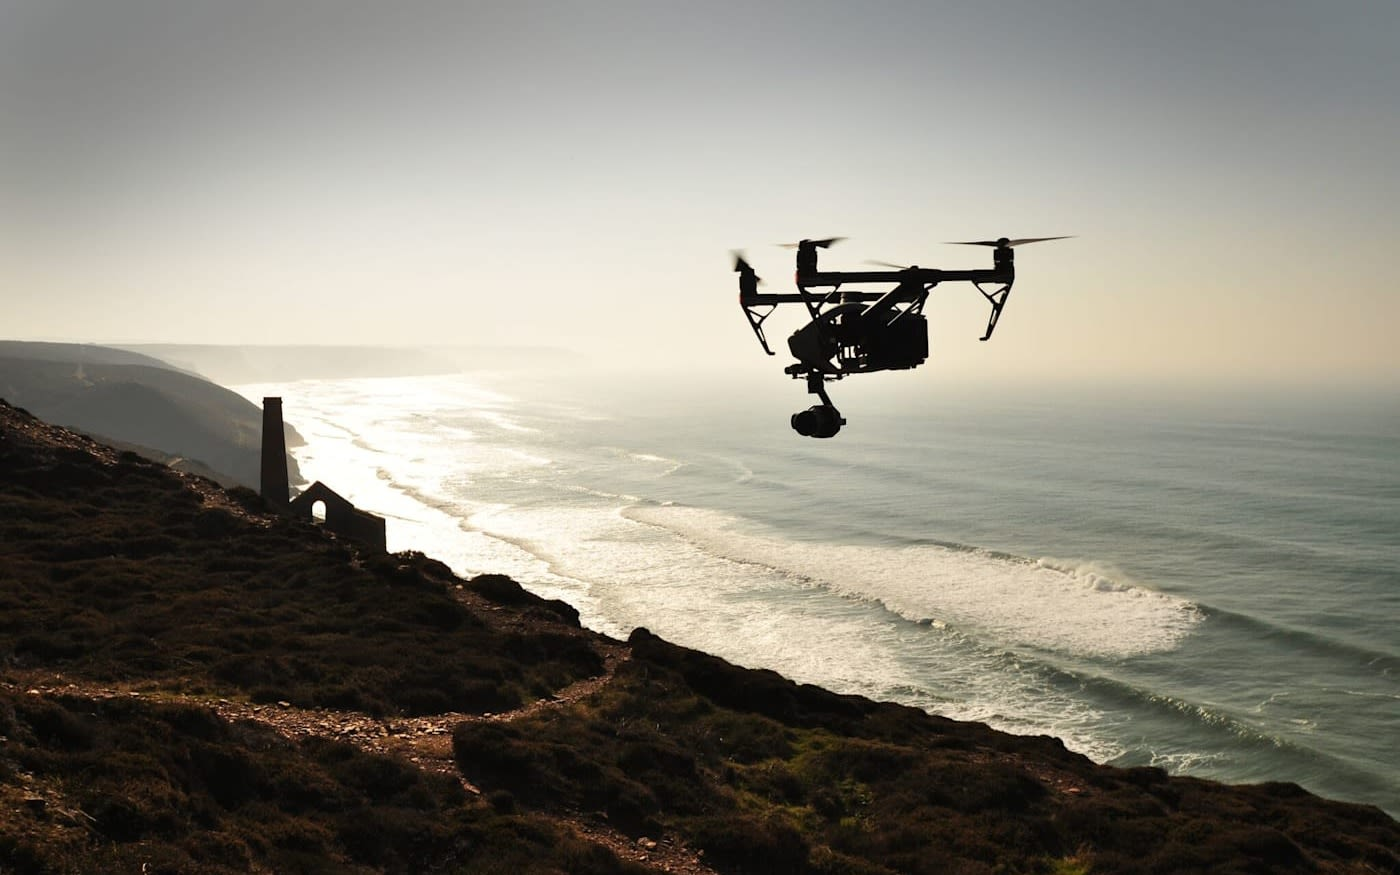 A drone flying over the sea and cliff edge